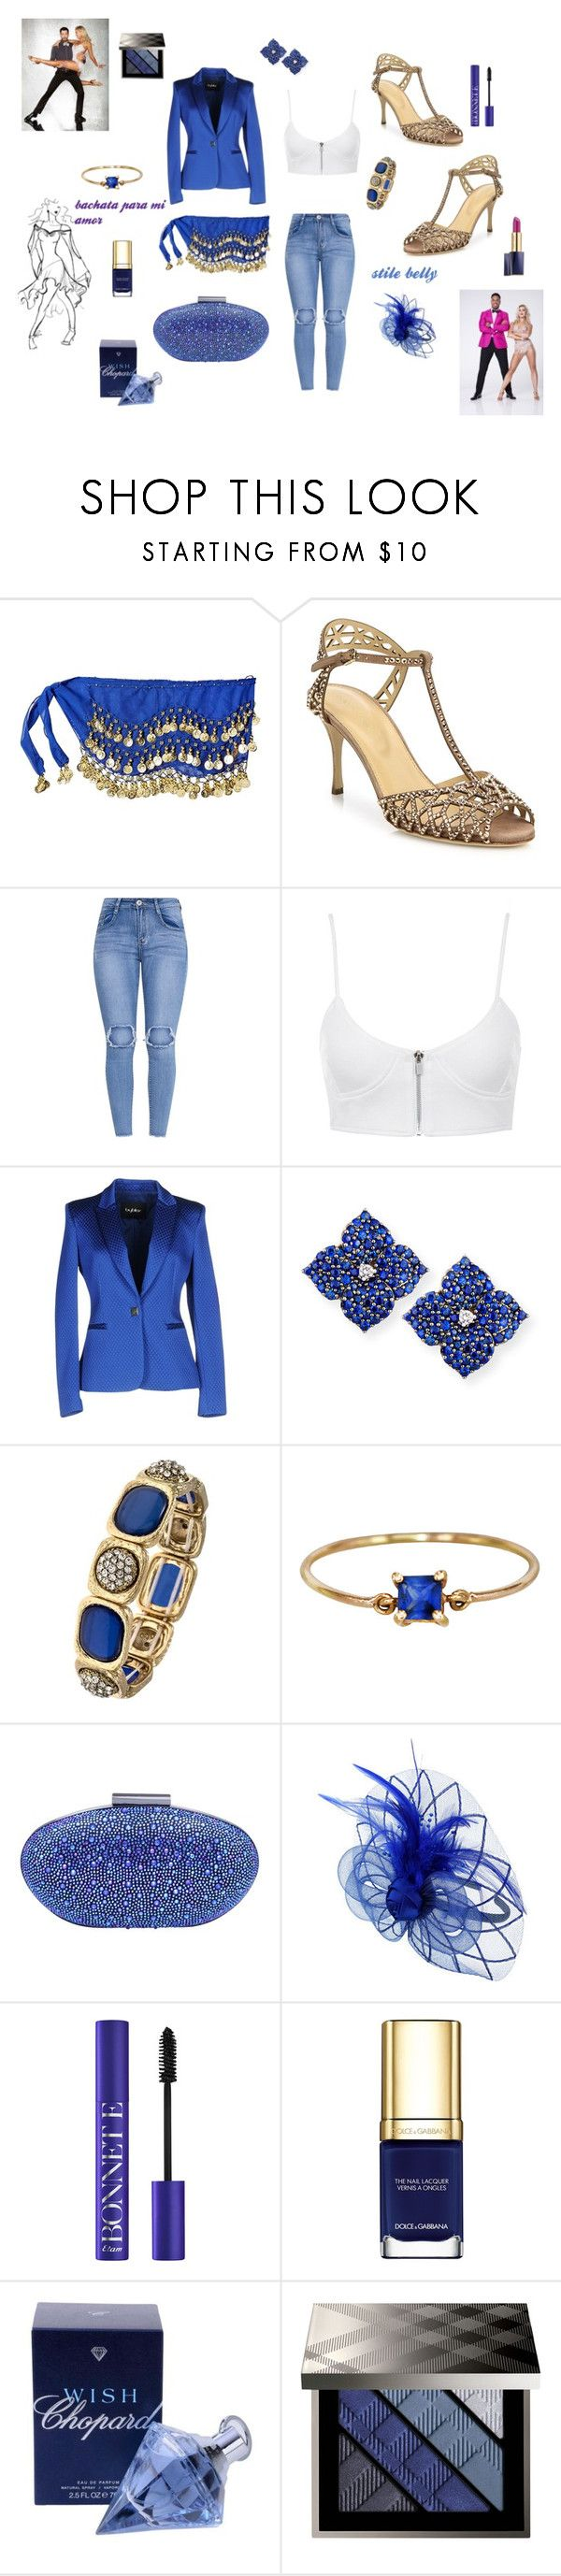 """""""bachata stile belly"""" by vincenza-adamo ❤ liked on Polyvore featuring Sergio Rossi, byblos, Piranesi, Yi Collection, Carvela, Dolce&Gabbana, Chopard, Burberry and Estée Lauder"""